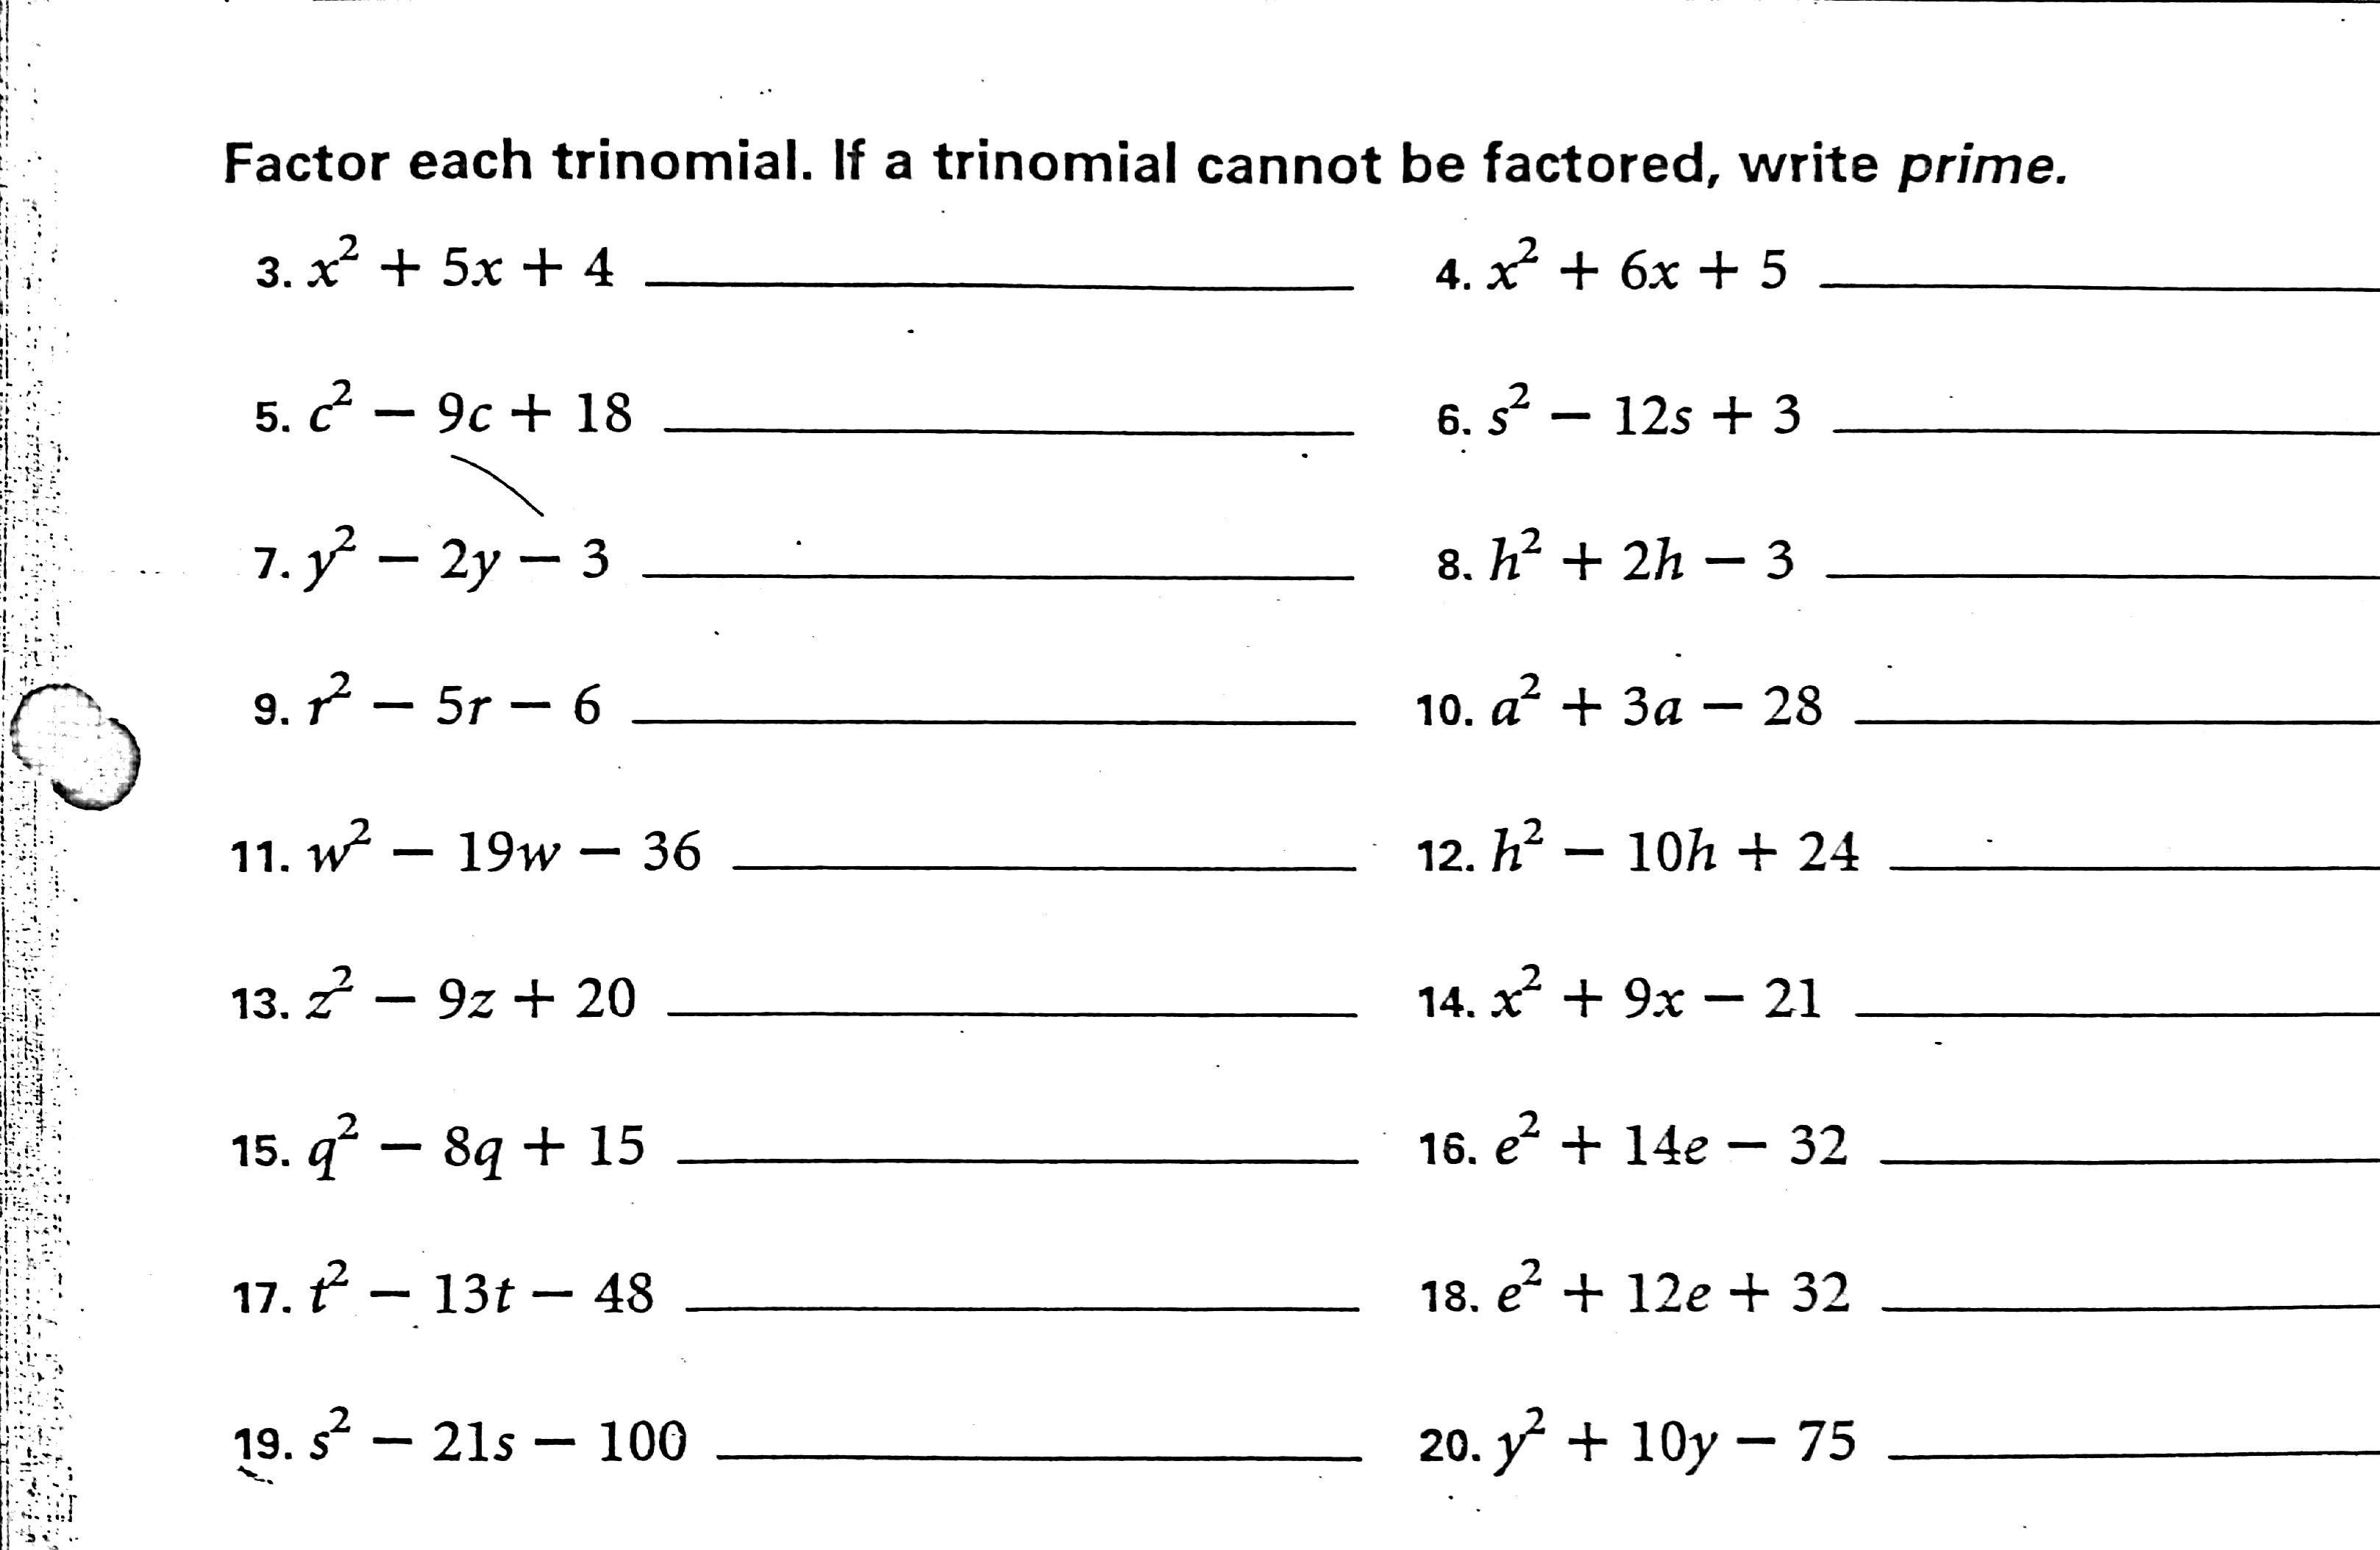 Proatmealus  Unique Factoring Worksheet  Delwfgcom With Goodlooking Factoring Polynomials Practice Worksheet With Answers Coterraneo With Beauteous Grammar Punctuation Worksheets Also Sudoku For Kids Worksheets In Addition Direct Indirect Worksheet And Finding Prime Numbers Worksheet As Well As Bodmas Worksheets For Grade  Additionally Mind Mapping Worksheets From Delwfgcom With Proatmealus  Goodlooking Factoring Worksheet  Delwfgcom With Beauteous Factoring Polynomials Practice Worksheet With Answers Coterraneo And Unique Grammar Punctuation Worksheets Also Sudoku For Kids Worksheets In Addition Direct Indirect Worksheet From Delwfgcom